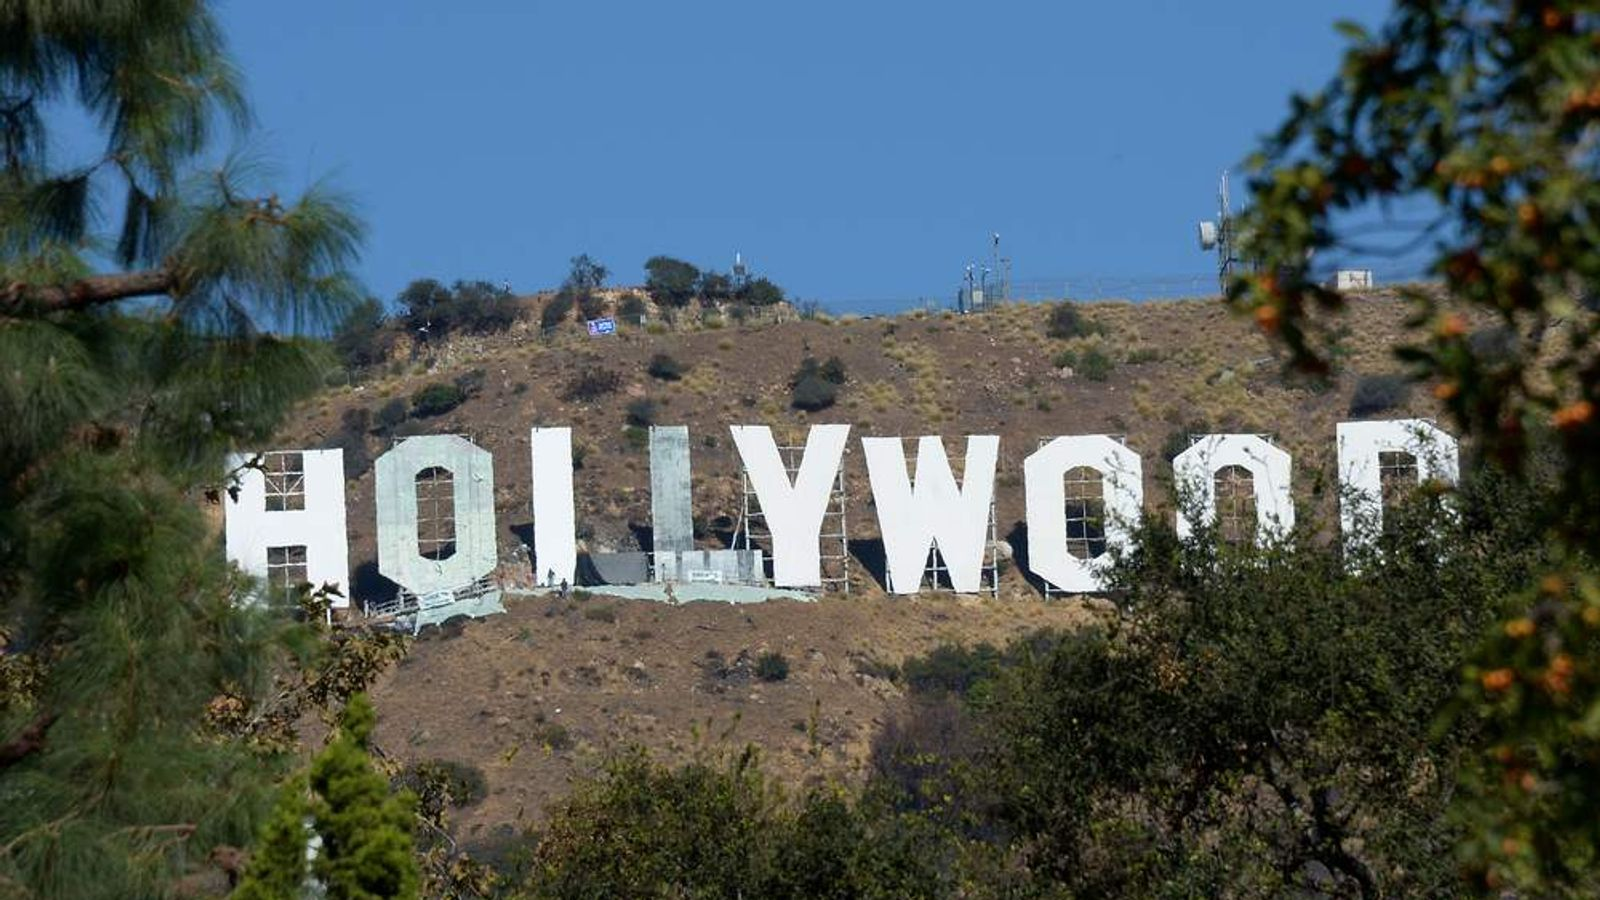 Workers  use window-cleaner style platforms as they strip down the 50-foot (15-meter) tall letters, power washing the corrugated iron and apply nearly 400 gallons of fresh paint while restoring the Hollywood sign on October 26,2012.